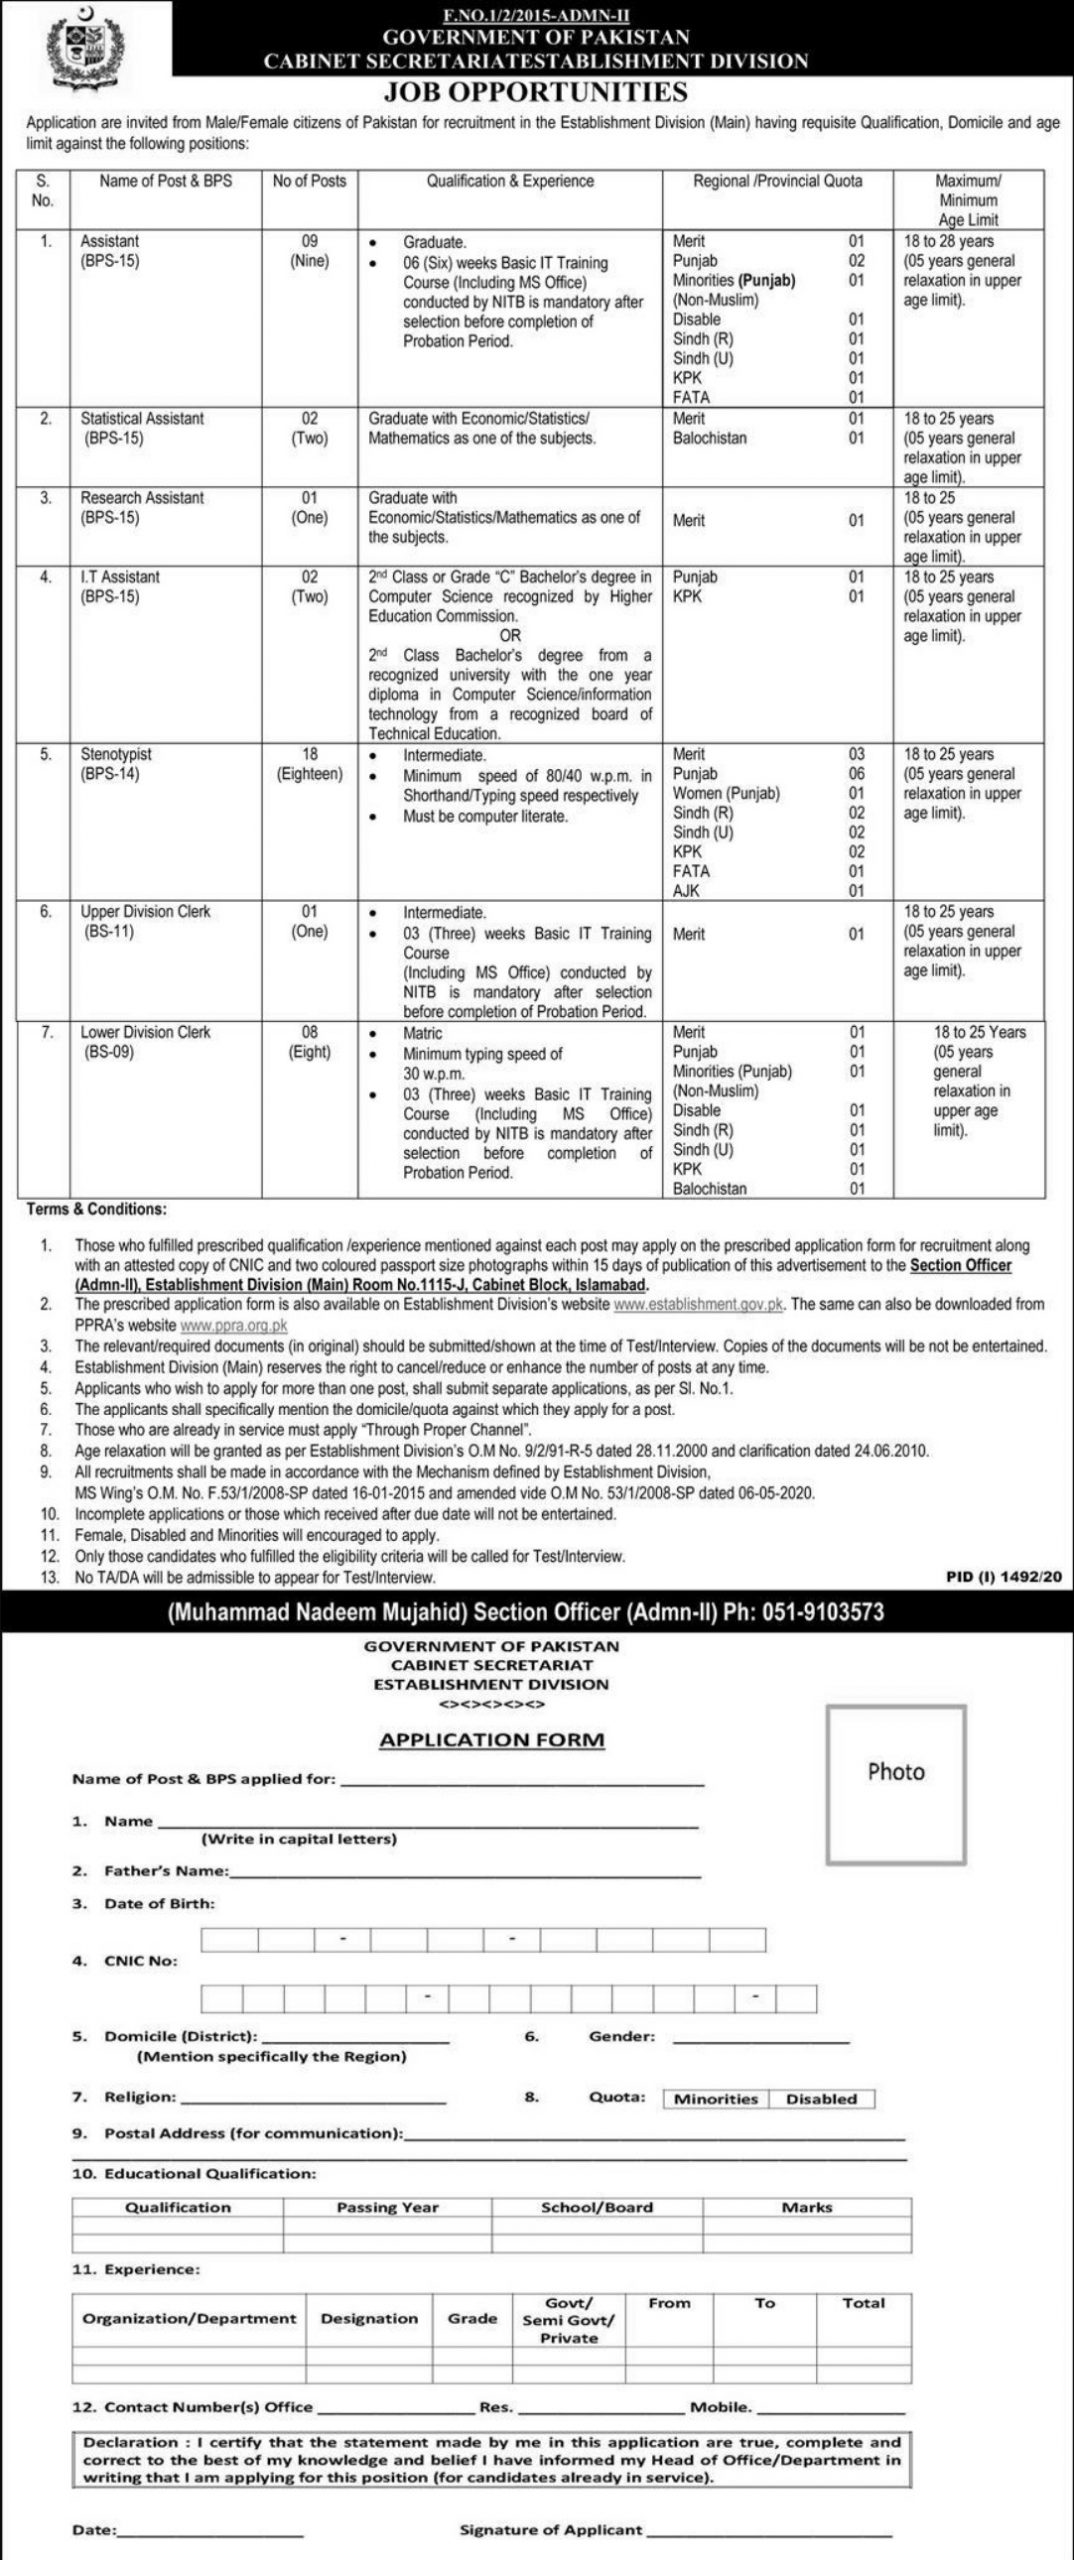 Cabinet Secretariat Establishment Division Jobs September 2020